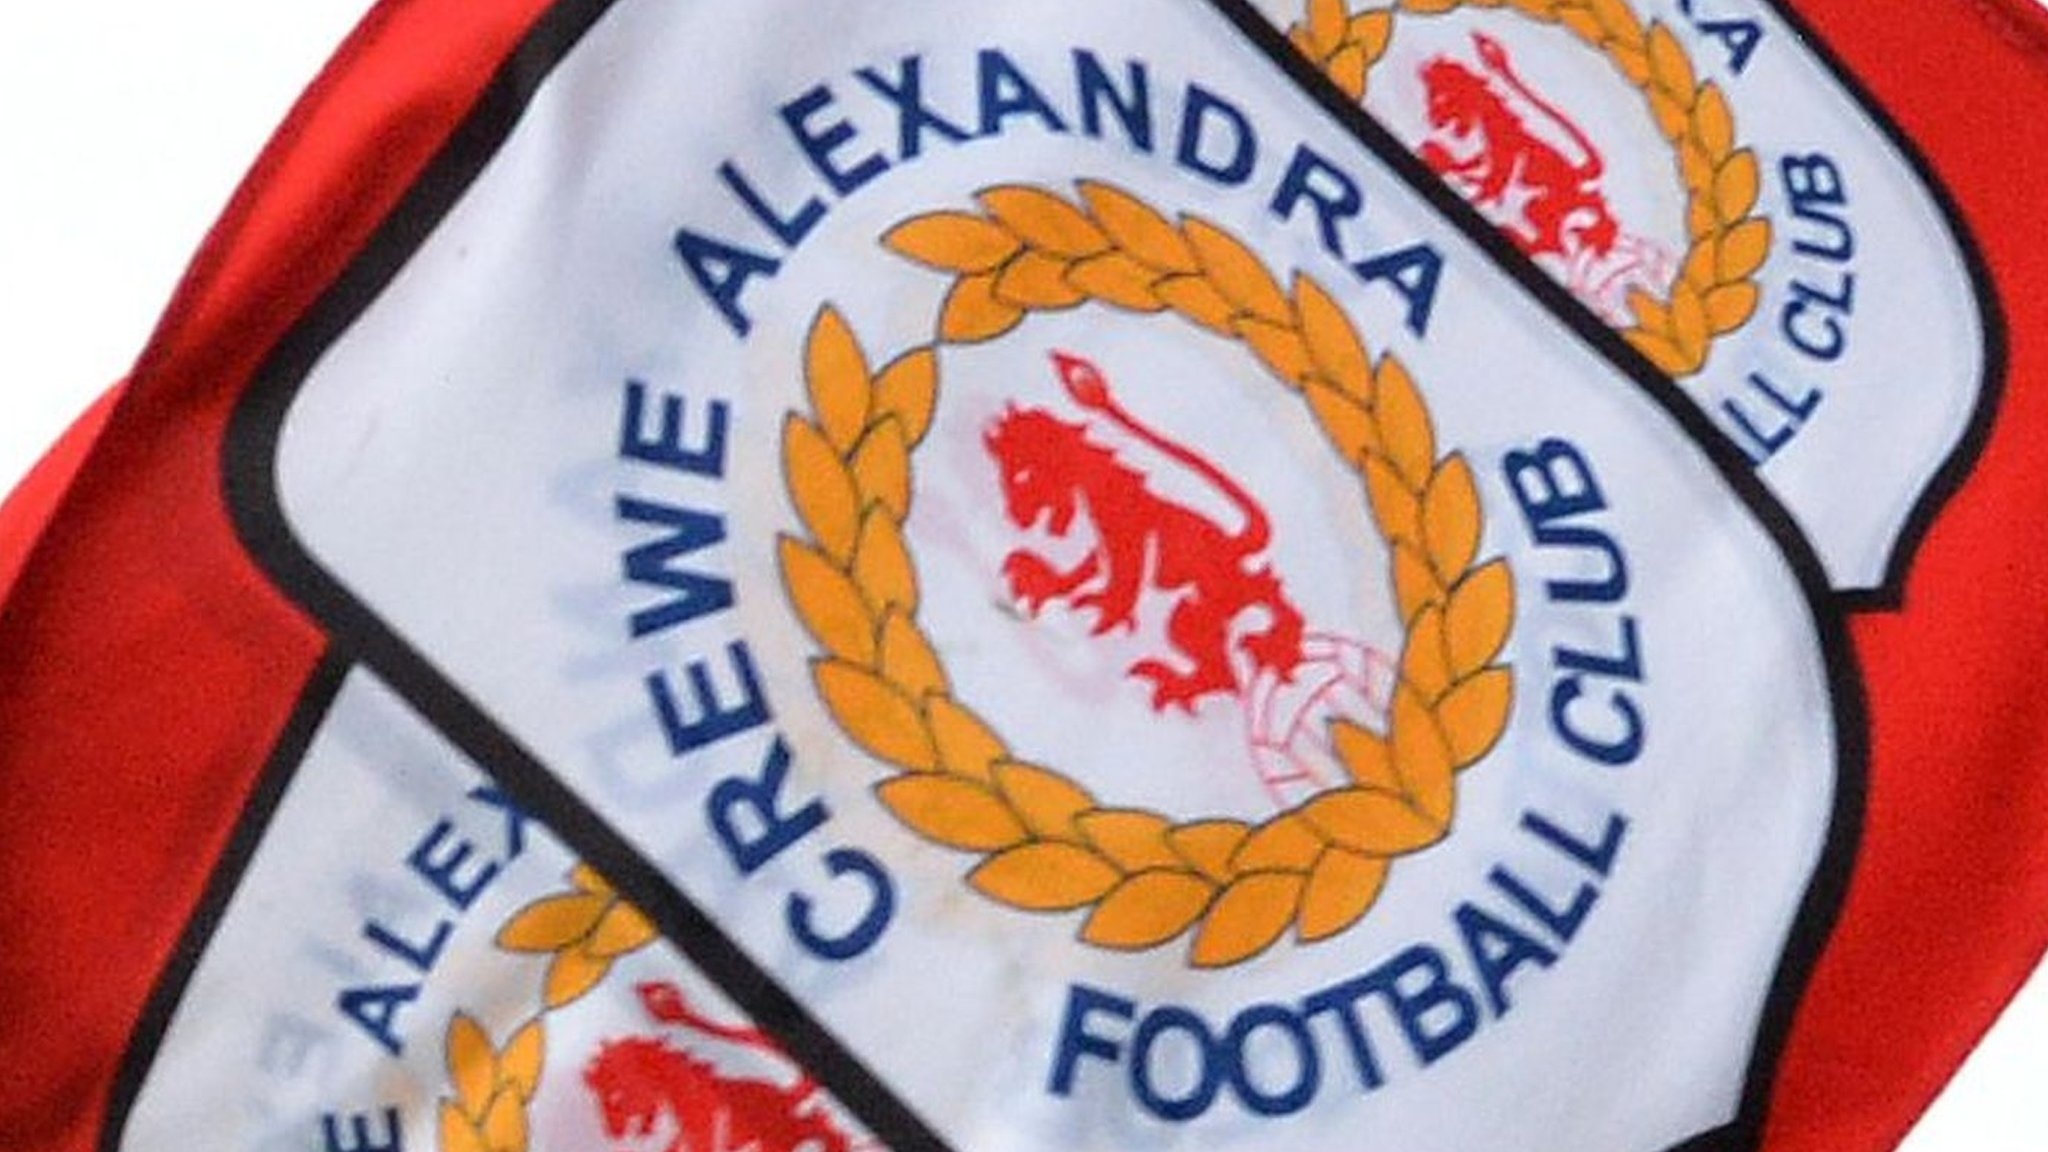 Crewe Alexandra: Youth coach Carl Everall suspended over safeguarding issue